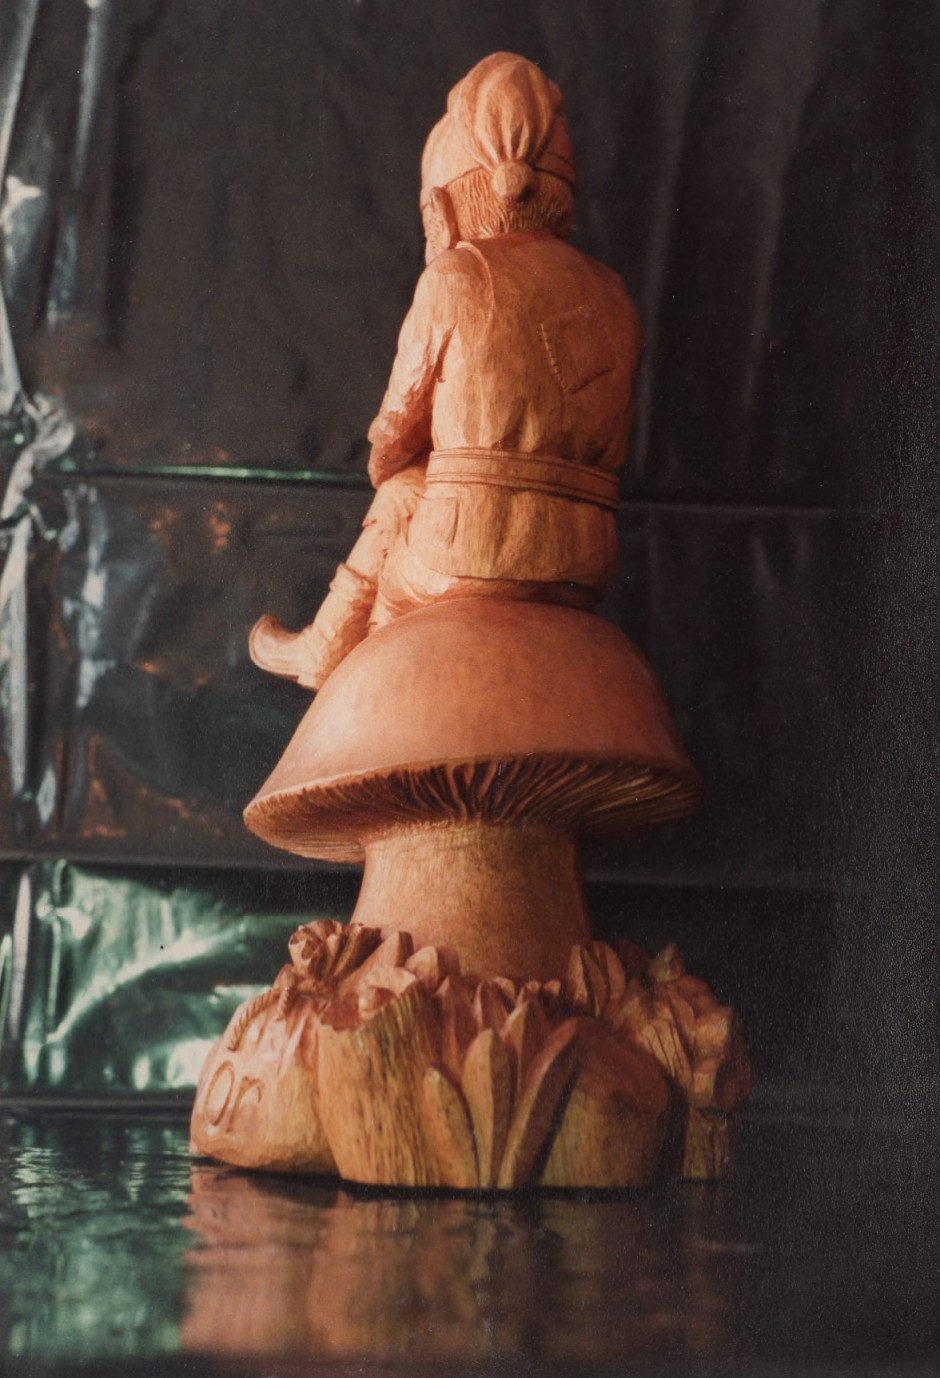 Rear view of the gnome by traditional woodcarver, Jose Sarabia - jose sarabia woodcarver gnome on a toadstool